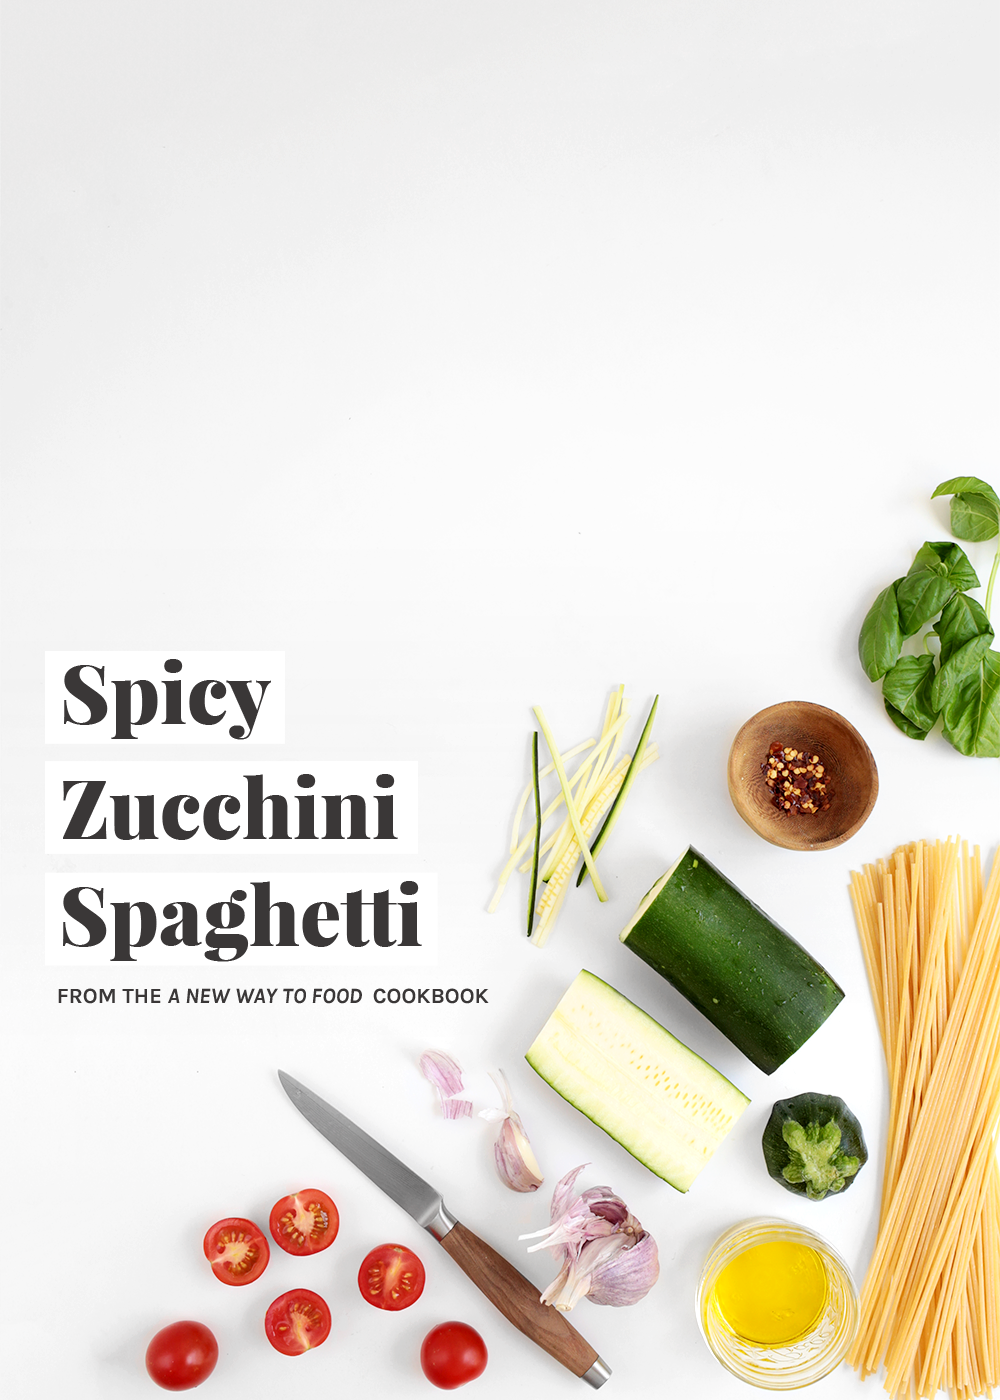 Spicy Zucchini Spaghetti recipe from a new way to food